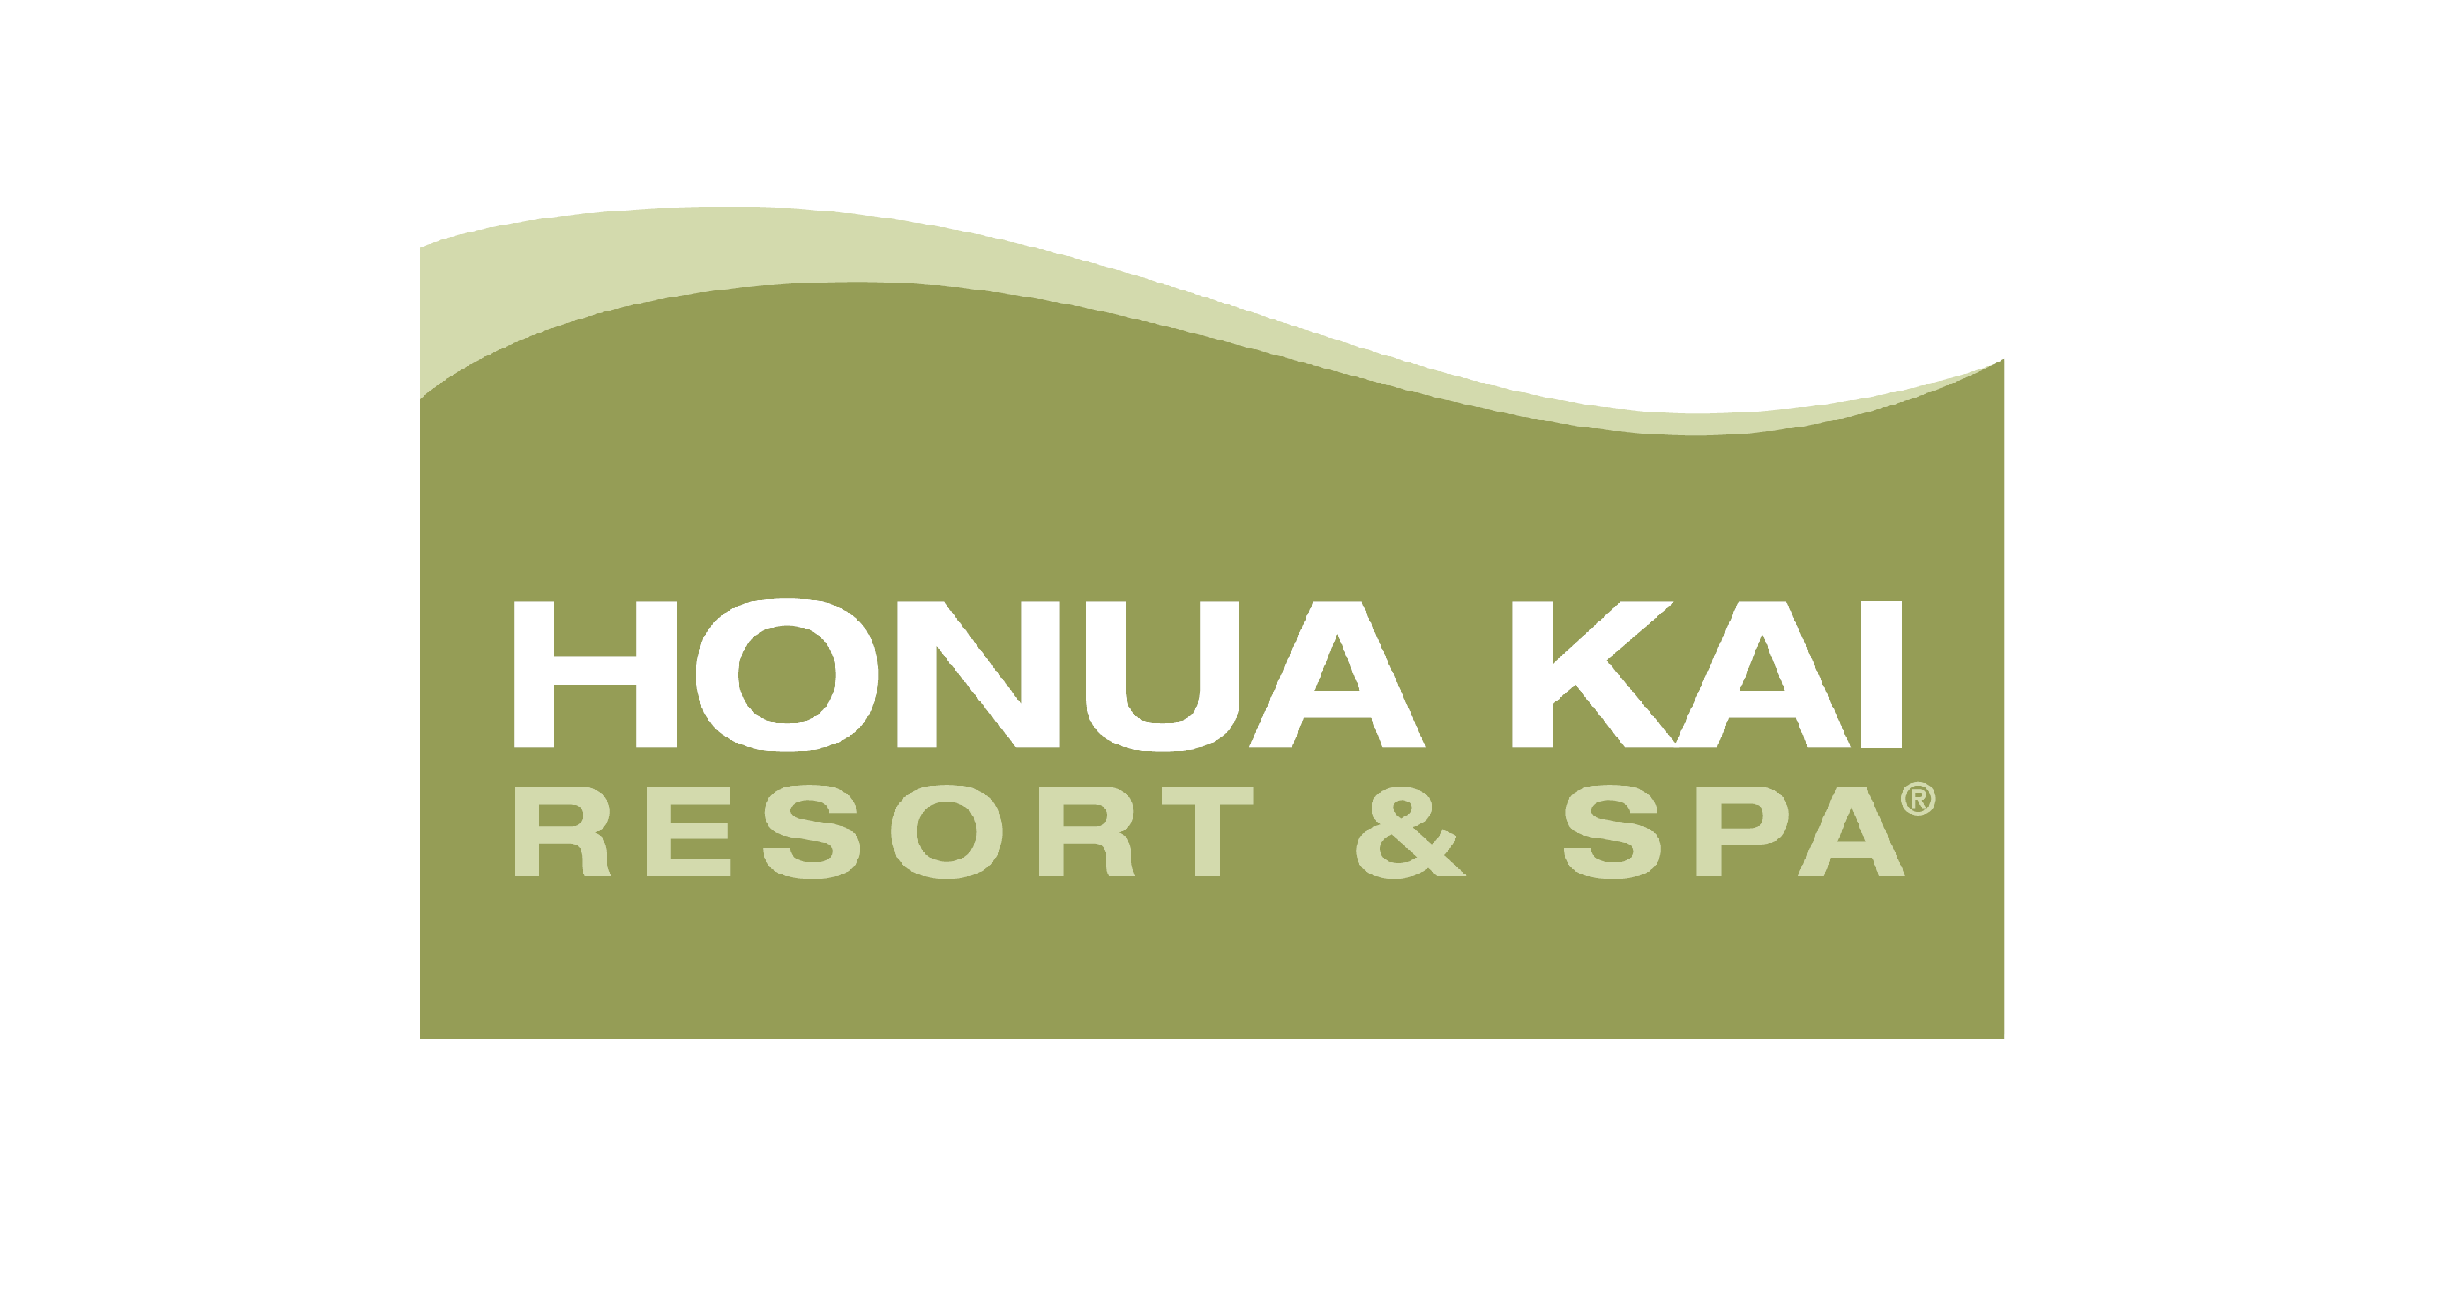 Honua Kai Resort & Spa Logo, Logo Design, Honolulu, Hawaii, Team Vision marketing, graphic design hawaii